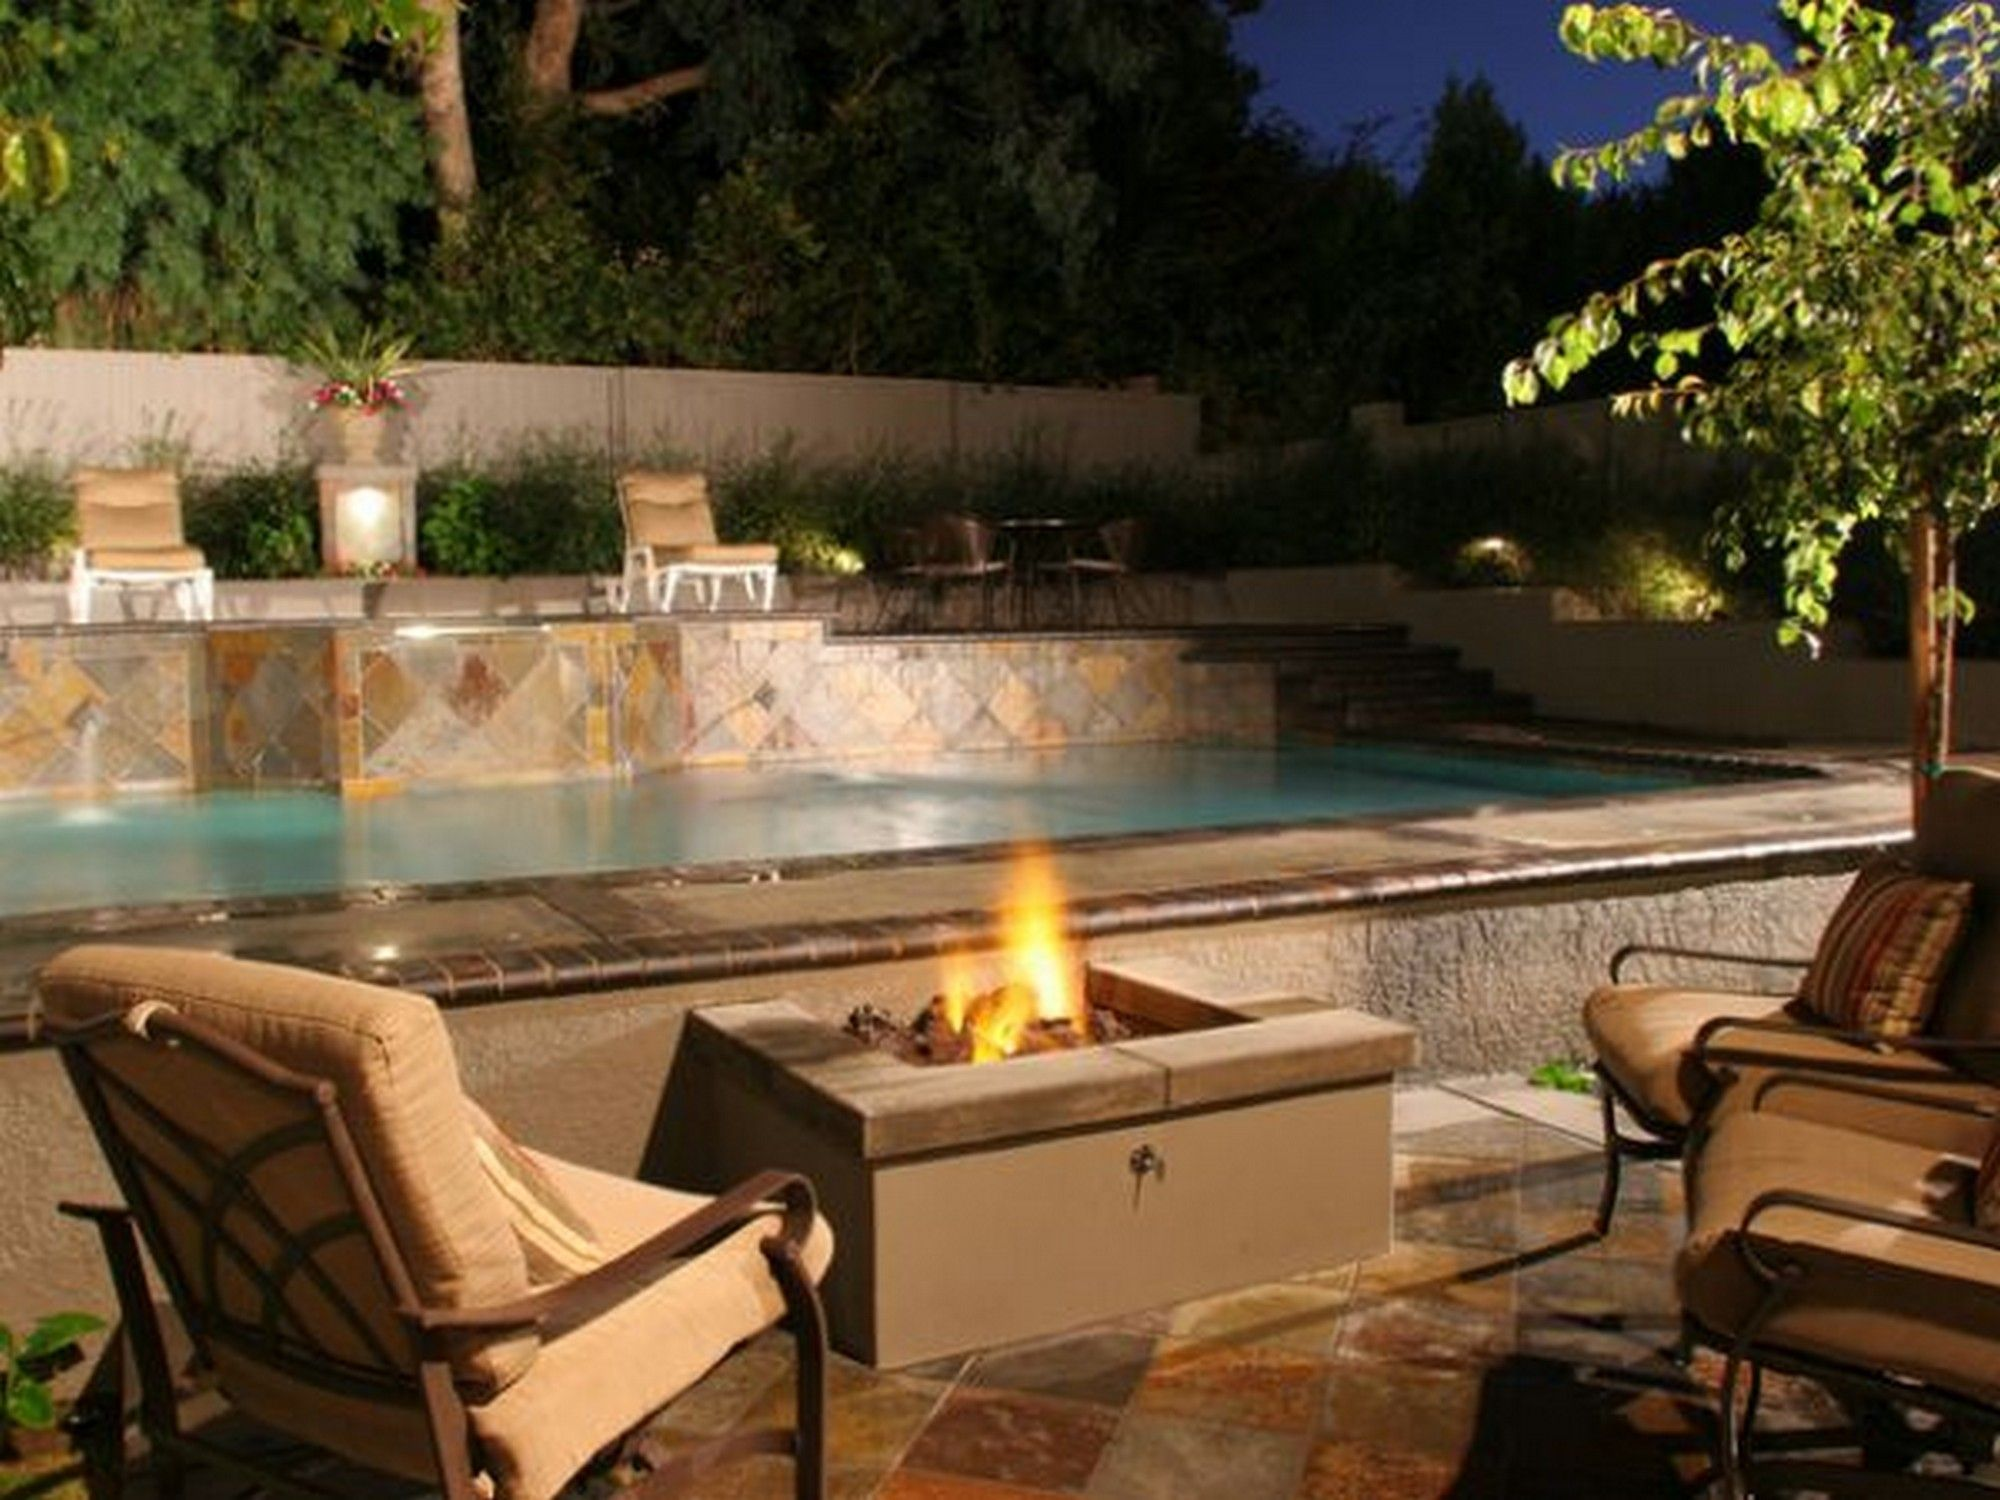 Designed By Mitch Kalamian, This Tri Level Backyard Features A Refurbished